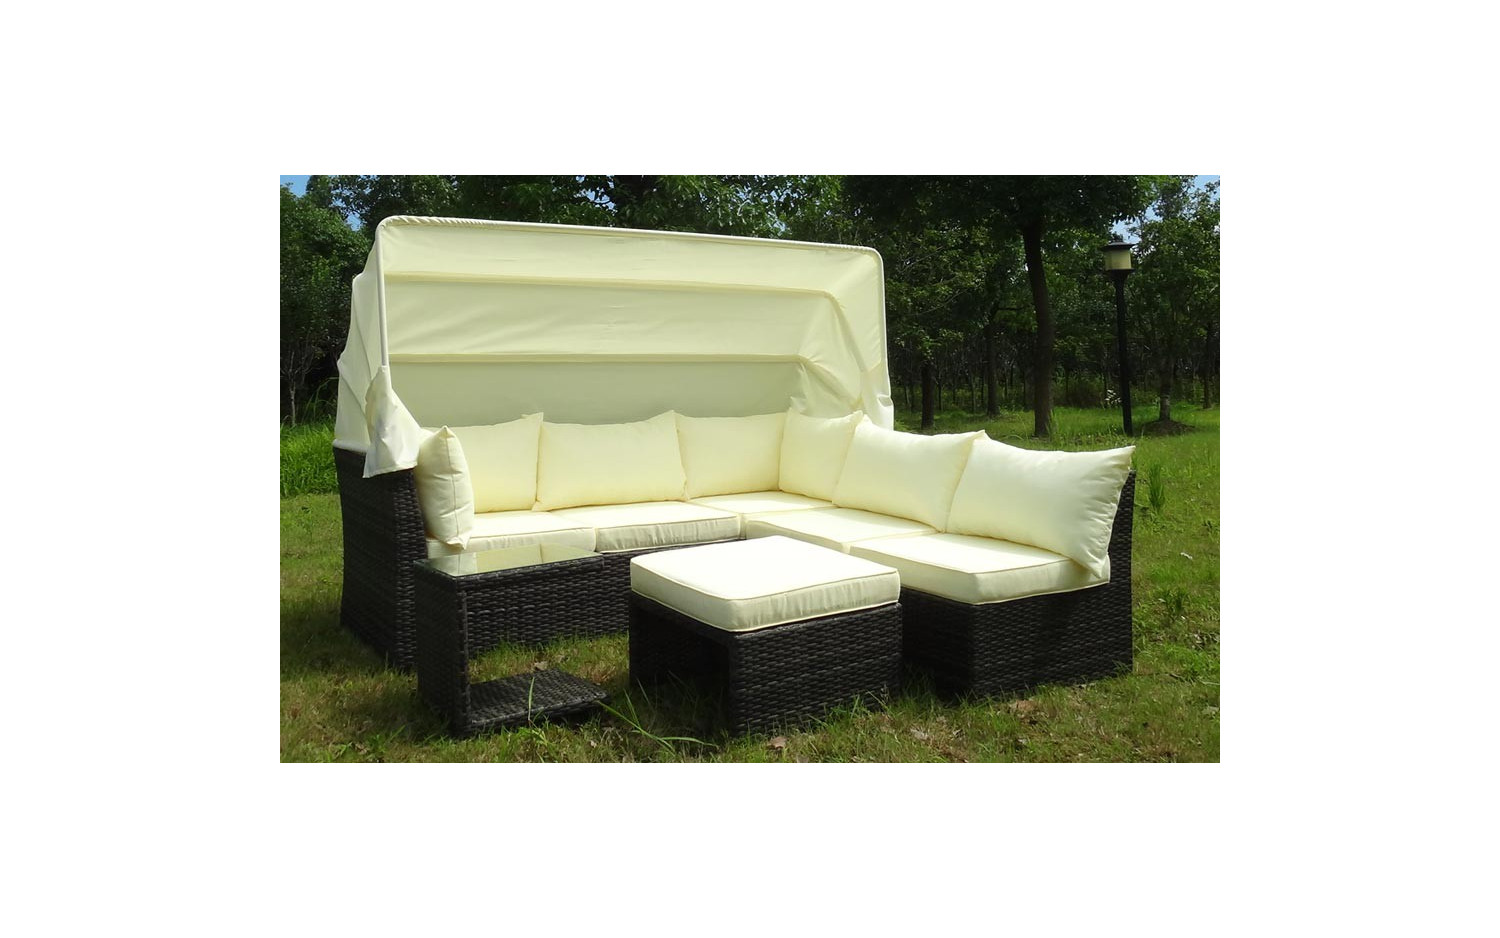 baidani rattan garten funktions lounge sofa weekend mit. Black Bedroom Furniture Sets. Home Design Ideas